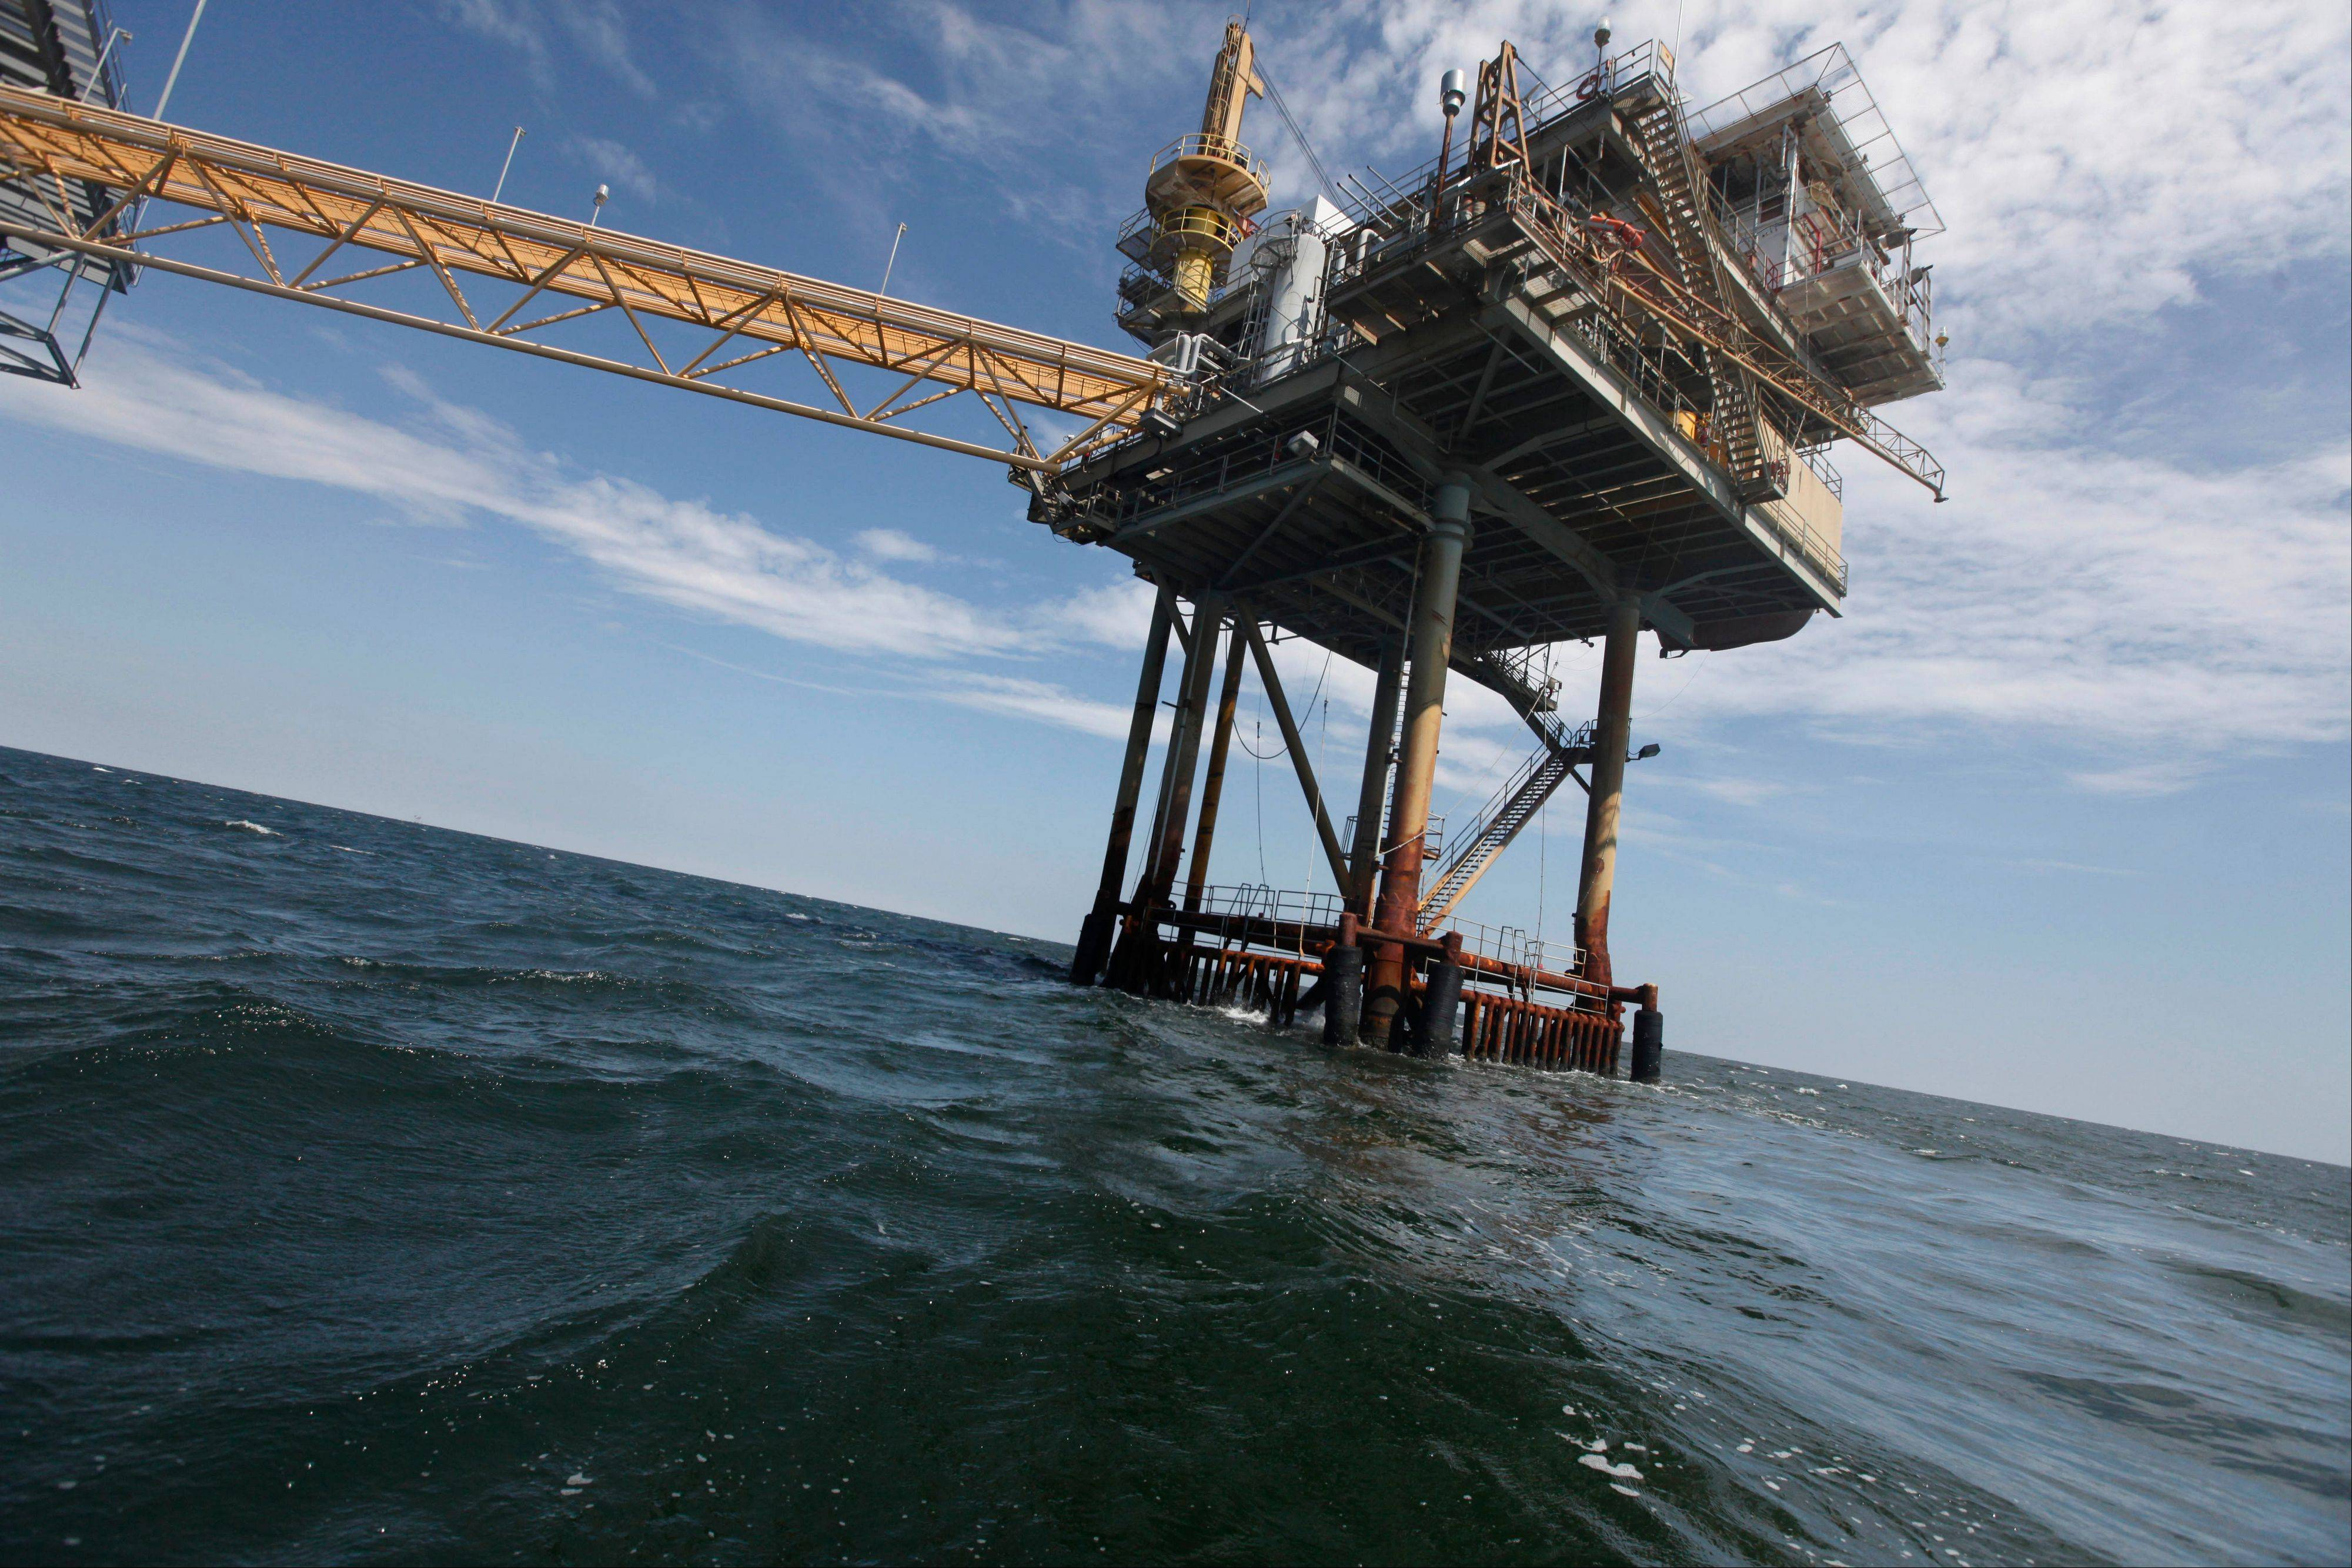 An oil rig is seen in the Gulf of Mexico near the Chandeleur Islands, off the Southeastern tip of Louisiana. Energy companies have reoccupied many of the production platforms in the Gulf of Mexico that were abandoned in advance of Hurricane Isaac.